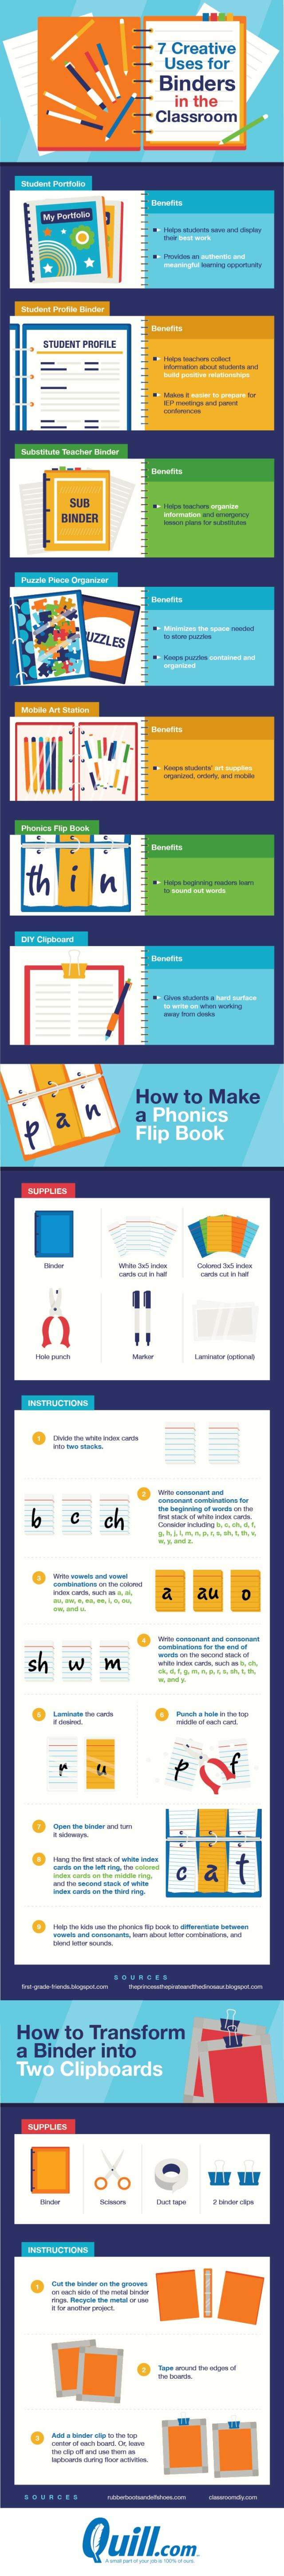 7 Money Saving, Creative Uses For Binders In The Classroom